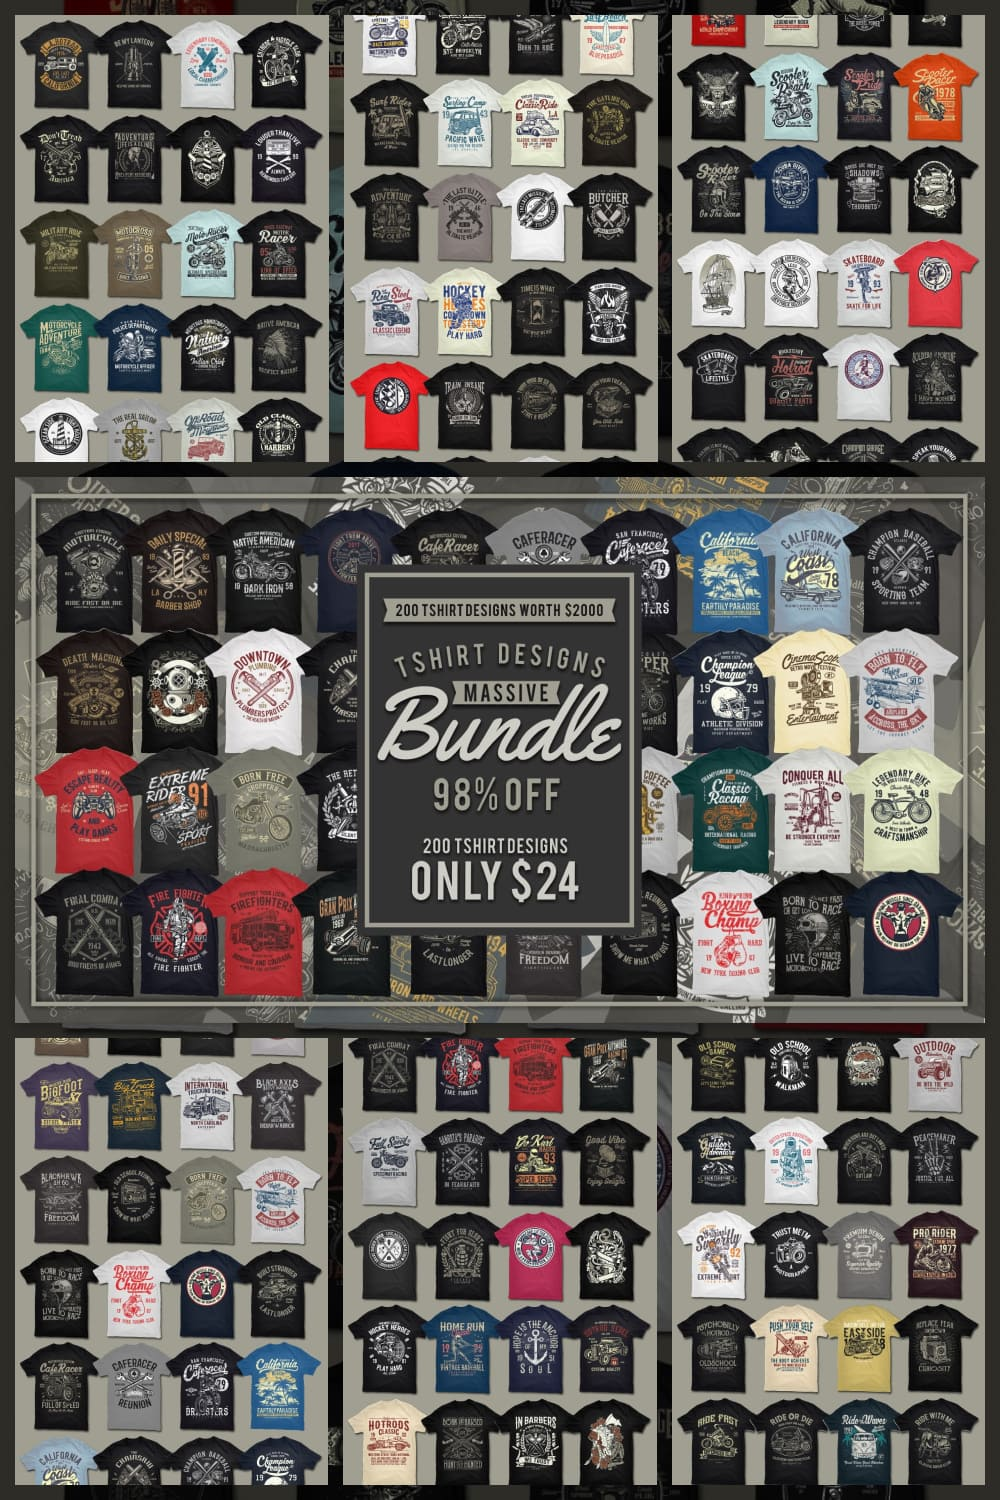 A selection of T-shirts for every taste and pocket.